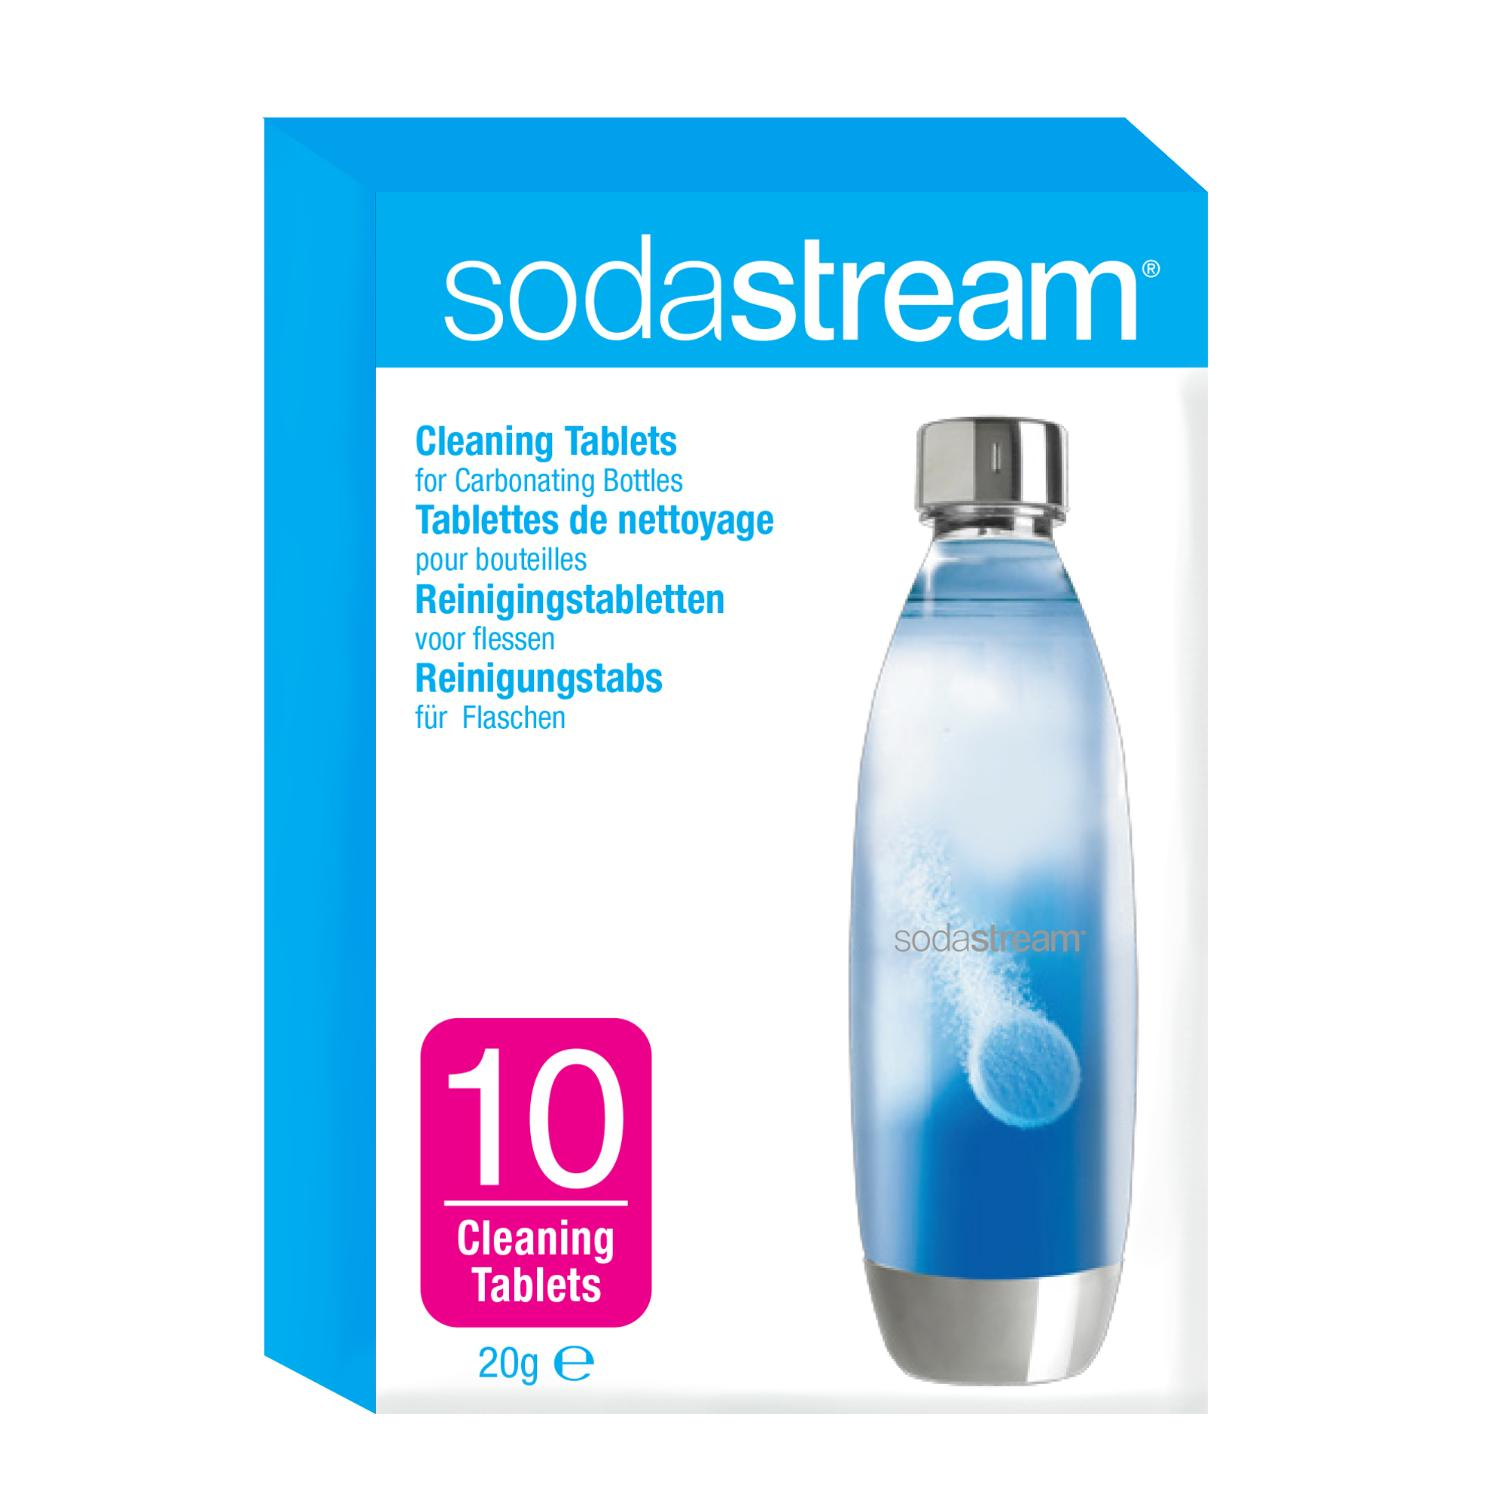 SodaStream - Cleaning Tablets